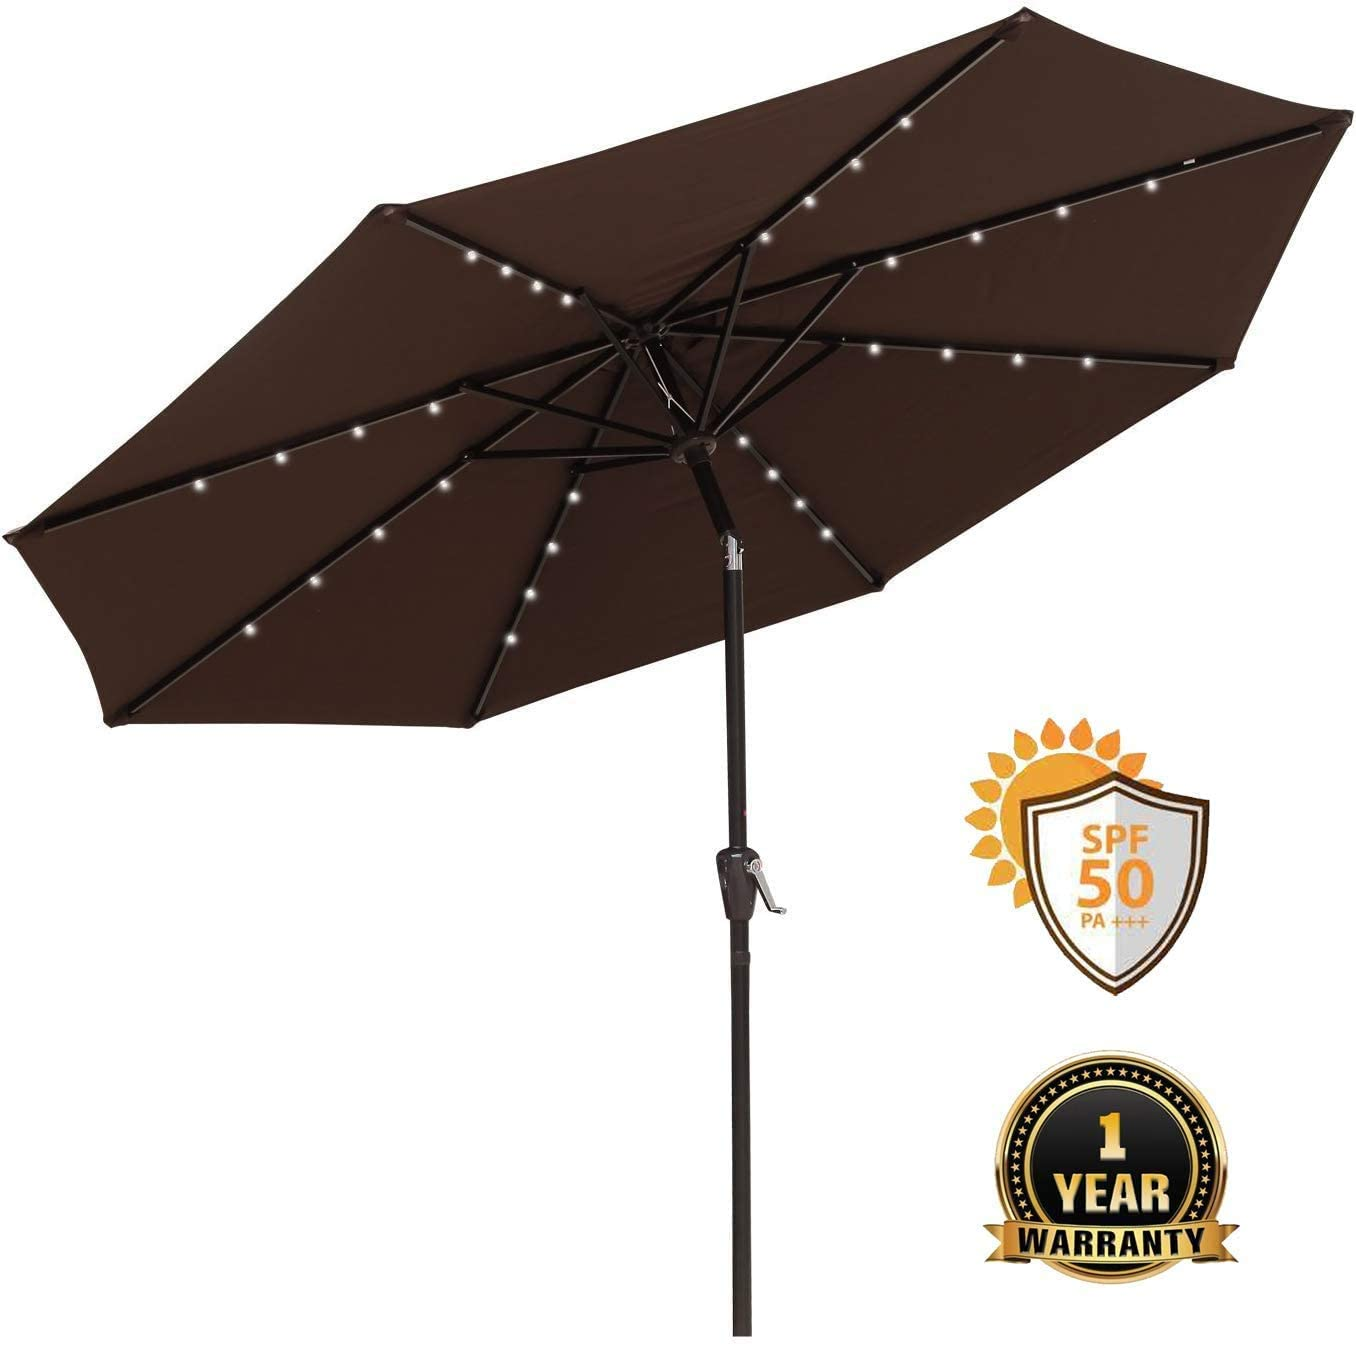 COBANA 9Ft Patio Umbrella Ourdoor Solar Powered Aluminum Polyester 32LED Lighted Umbrella with Tilt Adjustment and Fade-Resistant Fabric, Brown